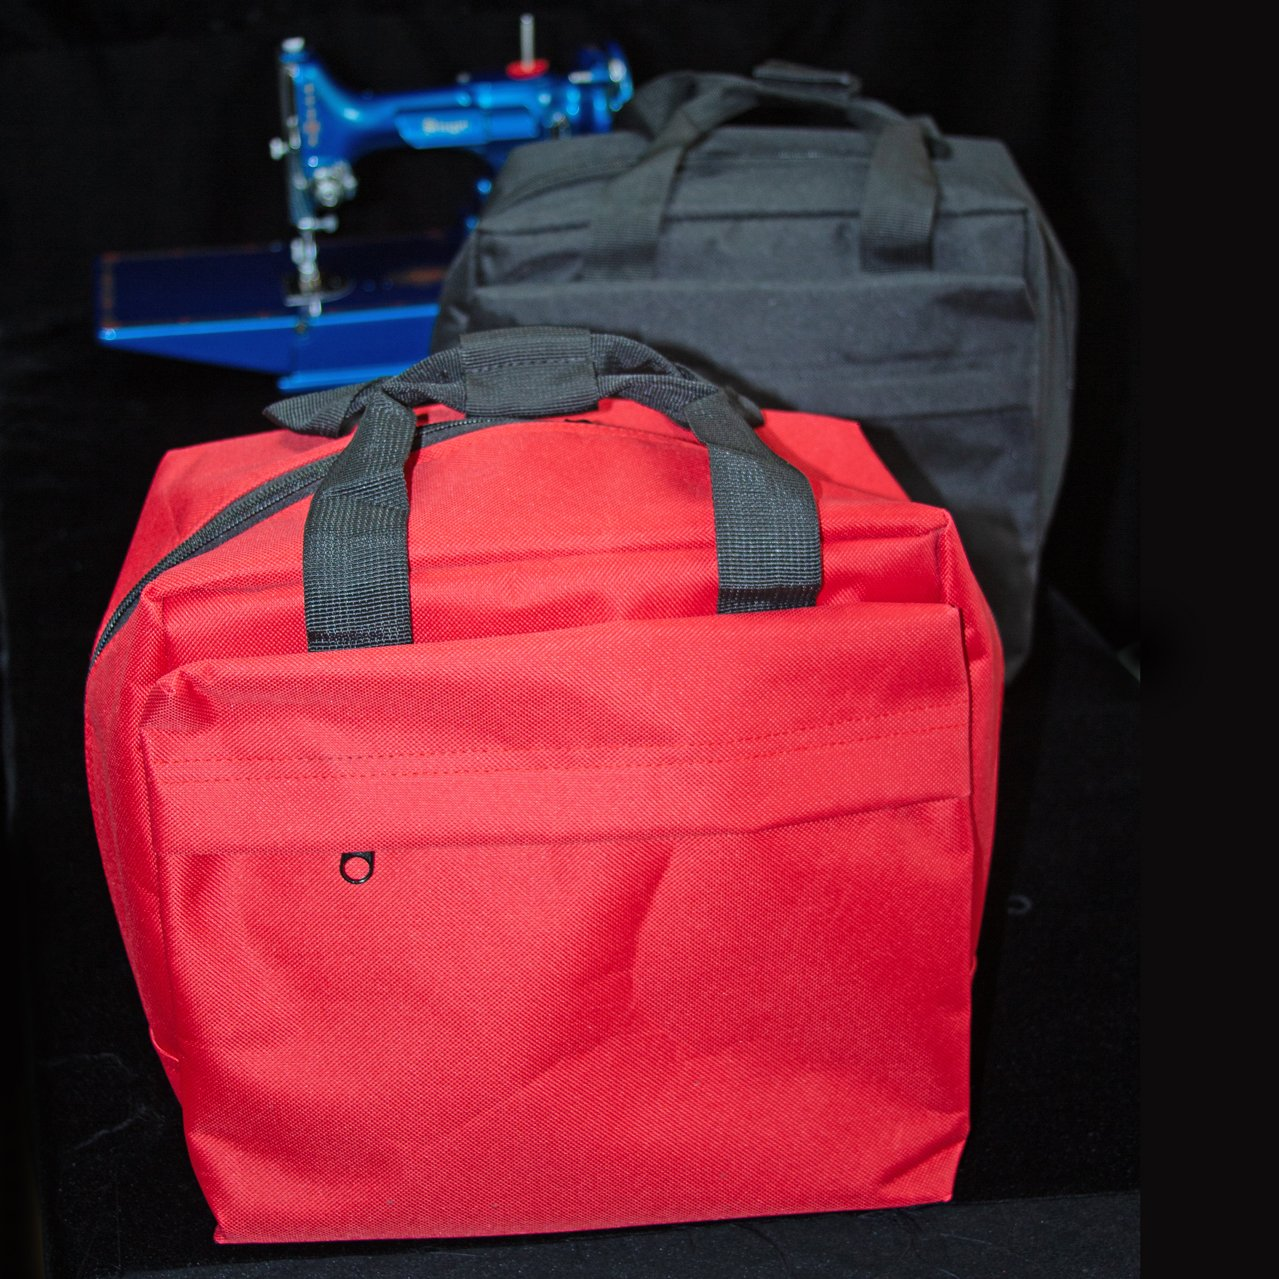 Singer 221 Featherweight Soft Case, new manufacture